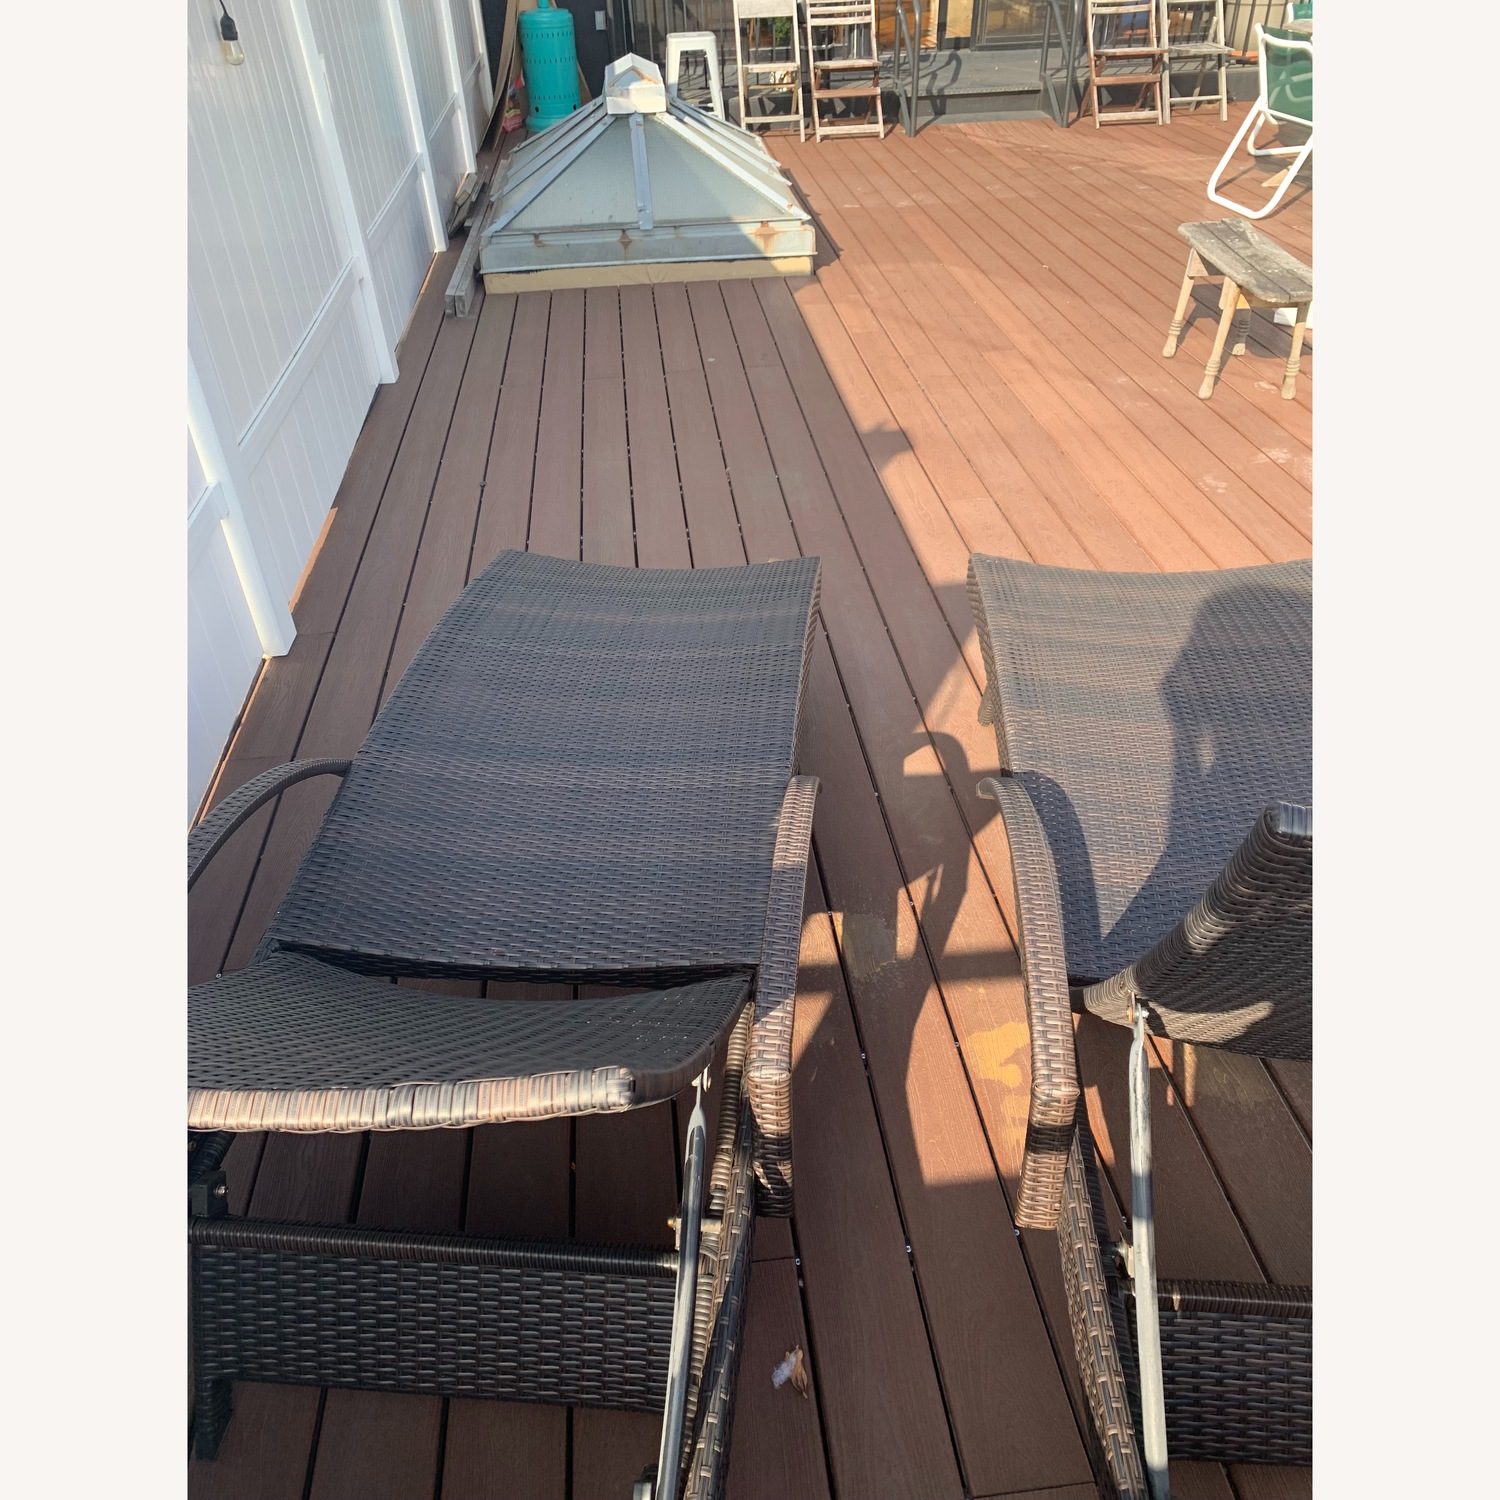 Rebello Outdoor Reclining Chaise Loungers - image-4